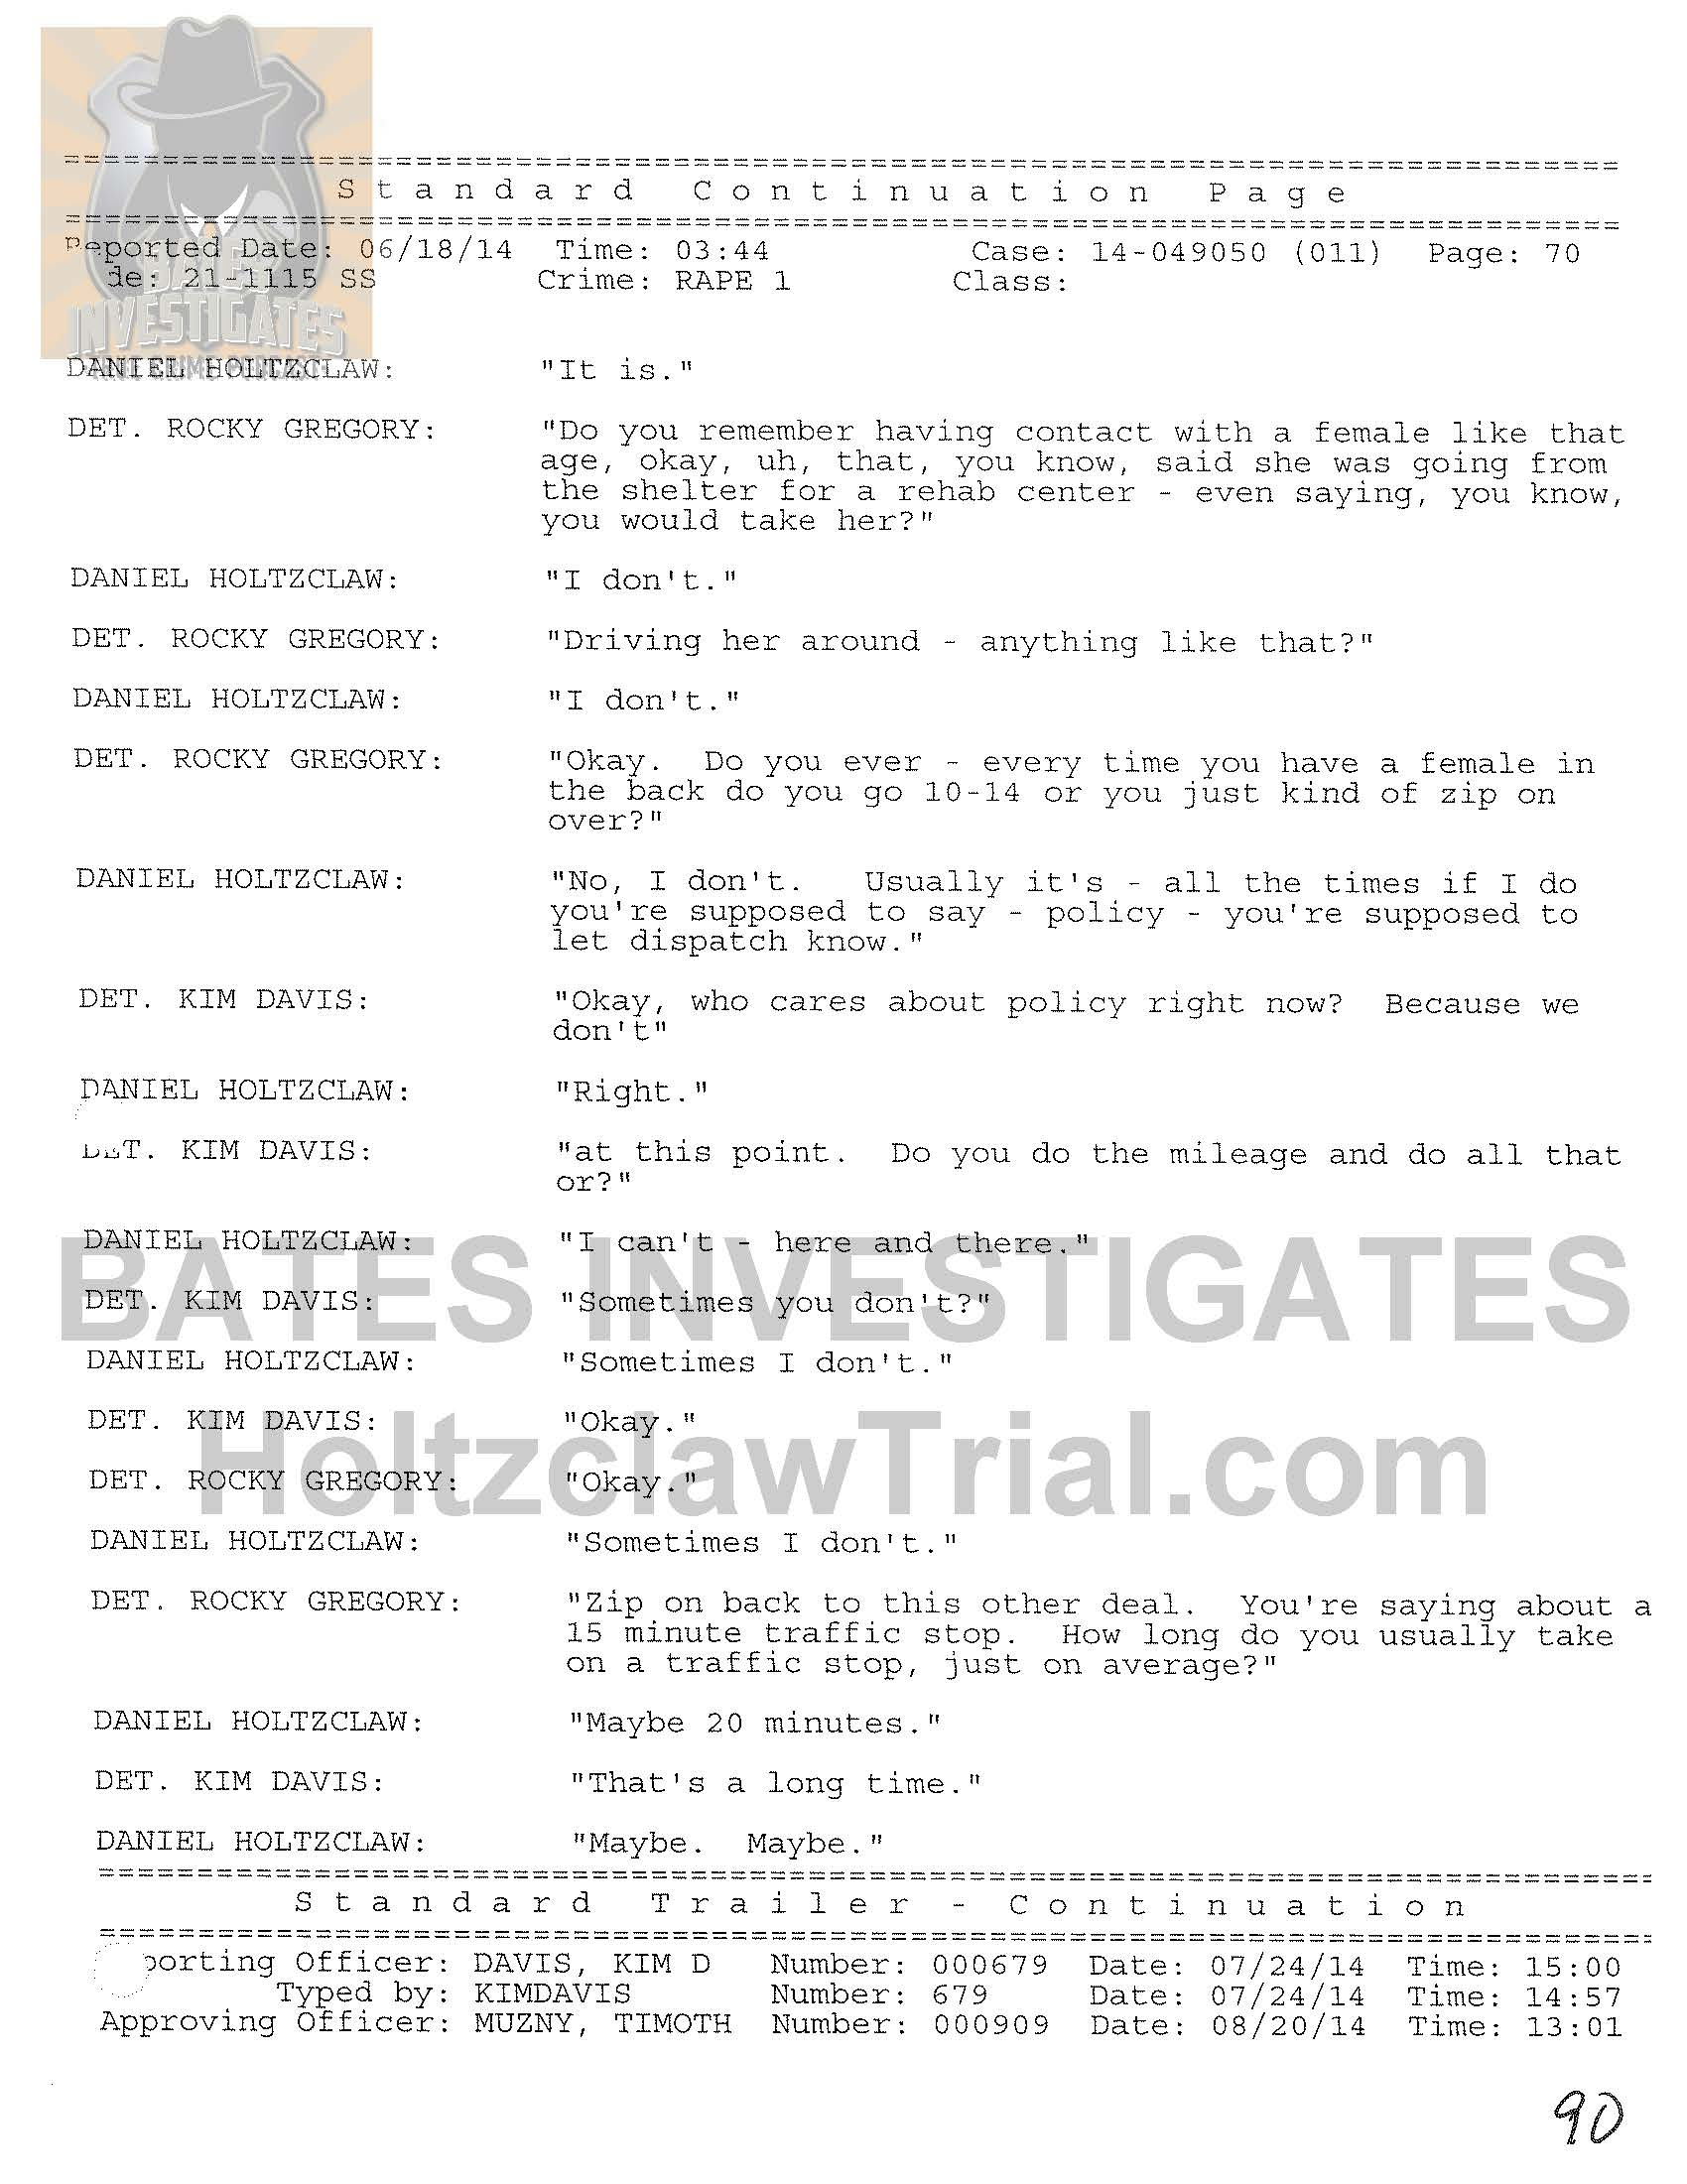 Holtzclaw Interrogation Transcript - Ep02 Redacted_Page_70.jpg